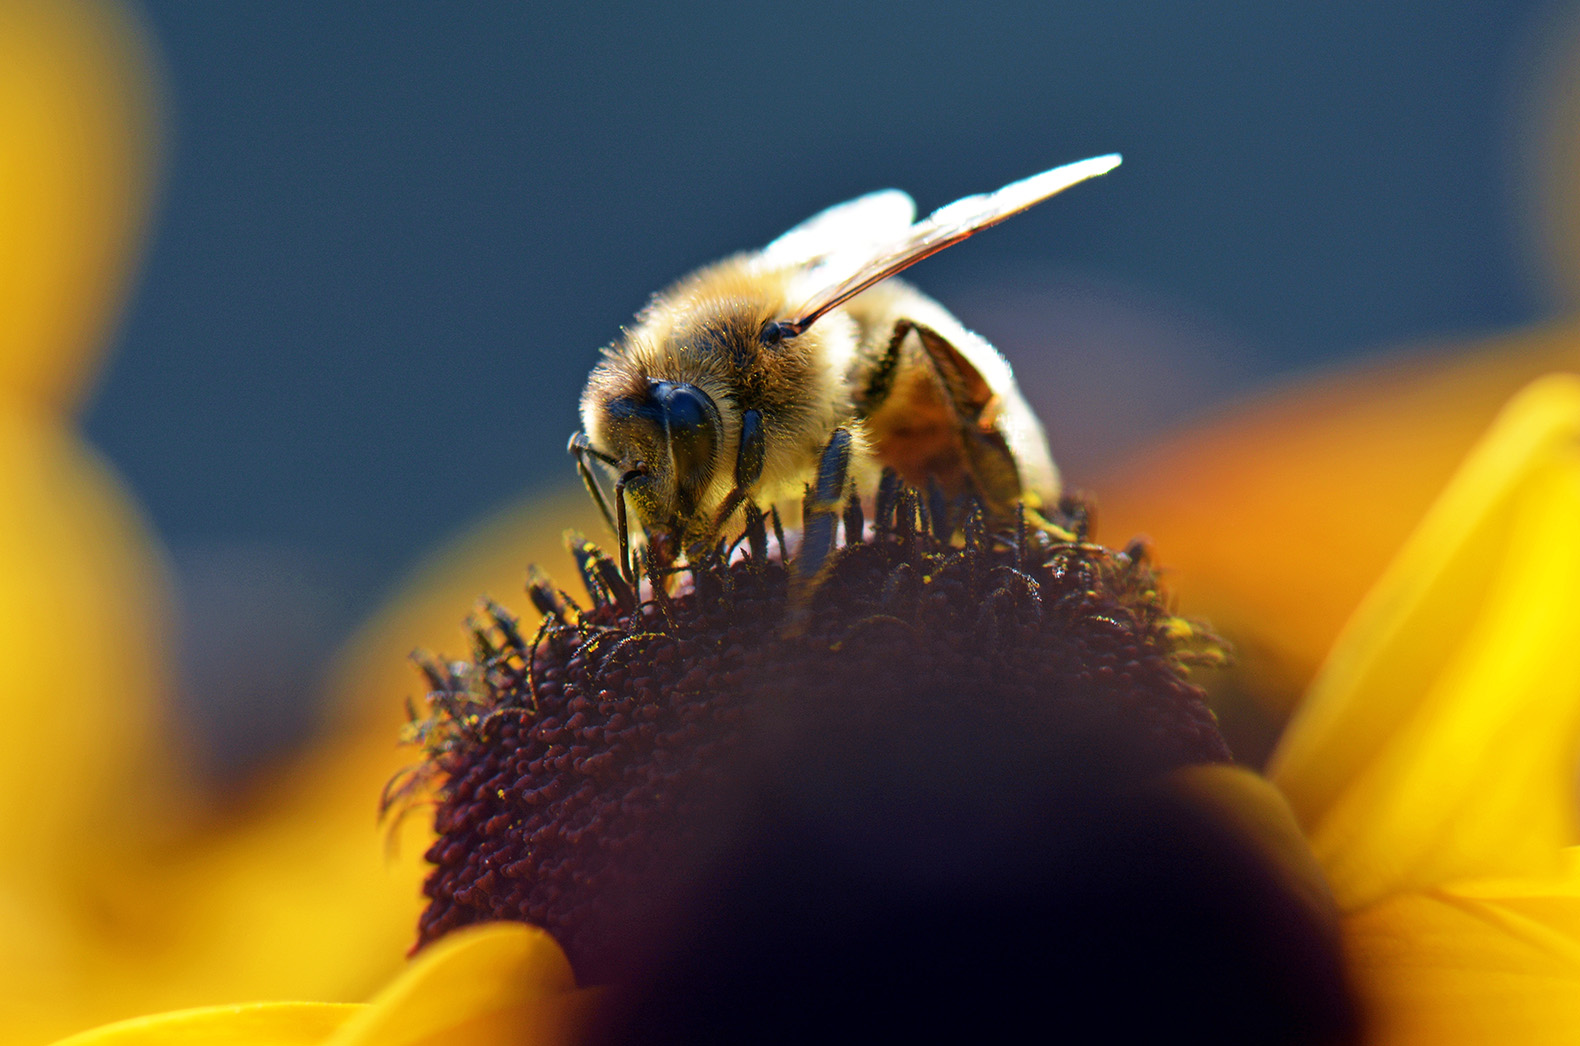 'Seed treatment is not harmful to bees': Bayer launches huge scientific study into neonicotinoids